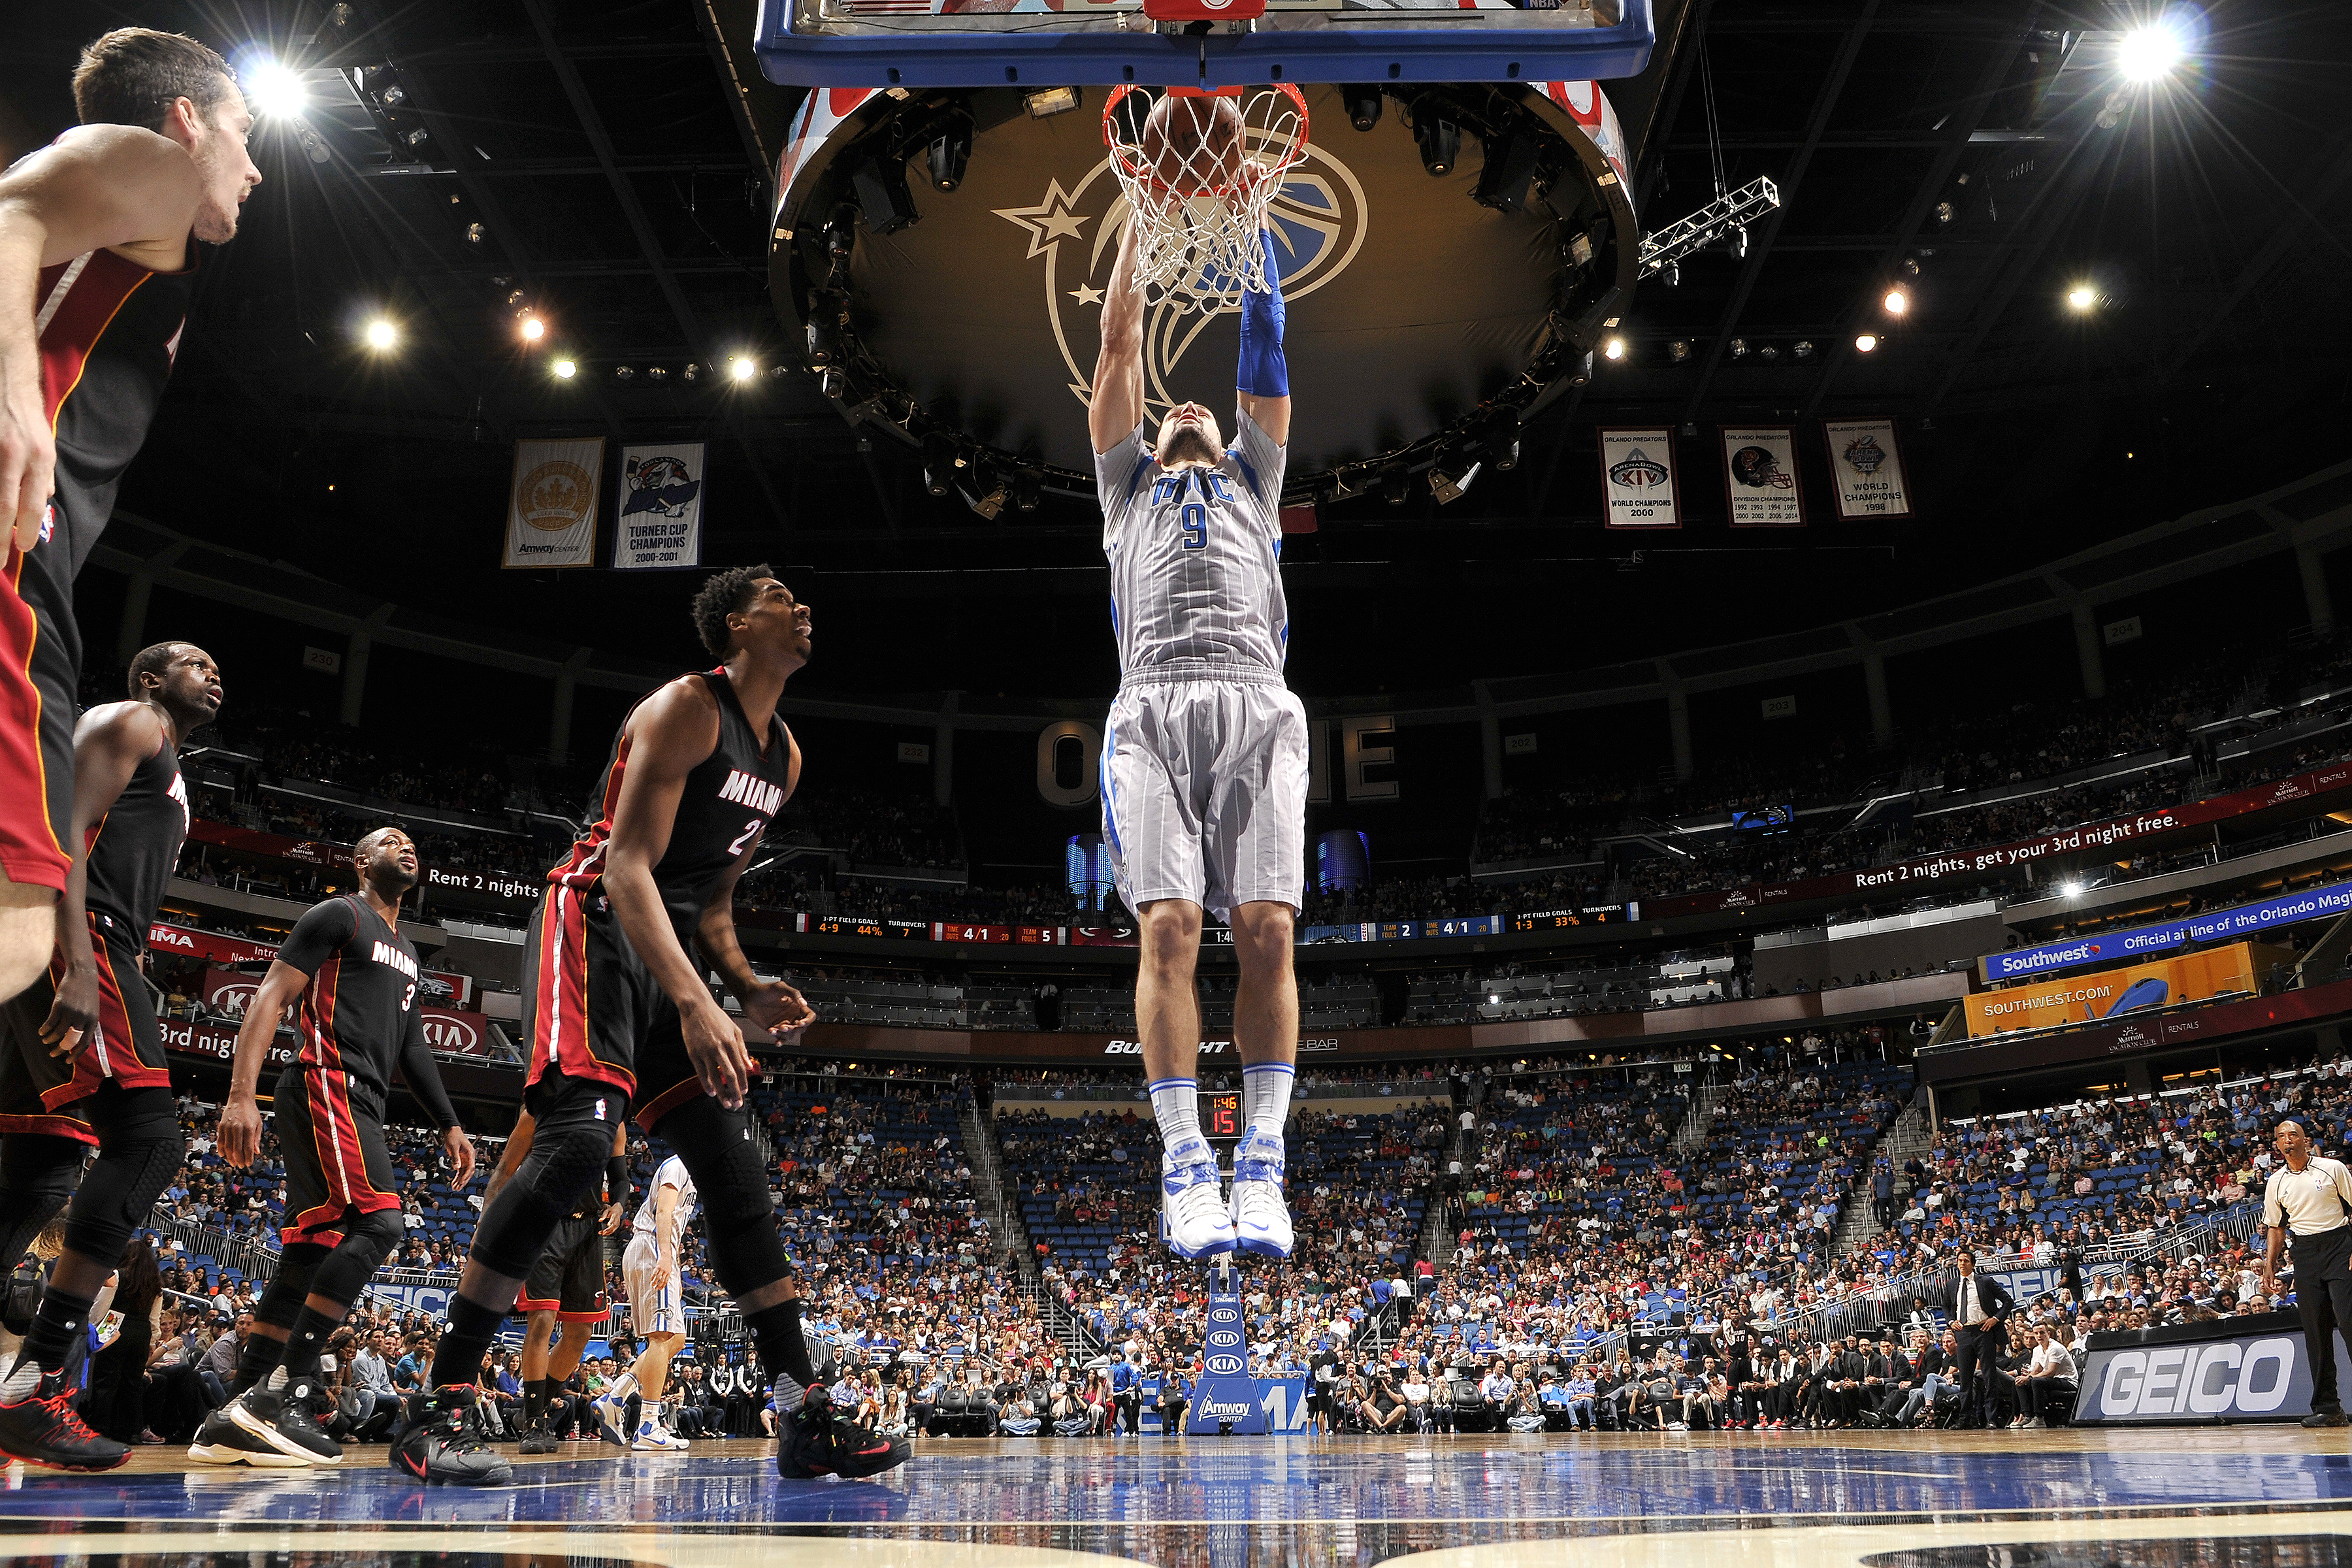 ORLANDO, FL - APRIL 8: Nikola Vucevic #9 of the Orlando Magic dunks the ball during the game against the Miami Heat on April 8, 2016 at Amway Center in Orlando, Florida. (Photo by Fernando Medina/NBAE via Getty Images)